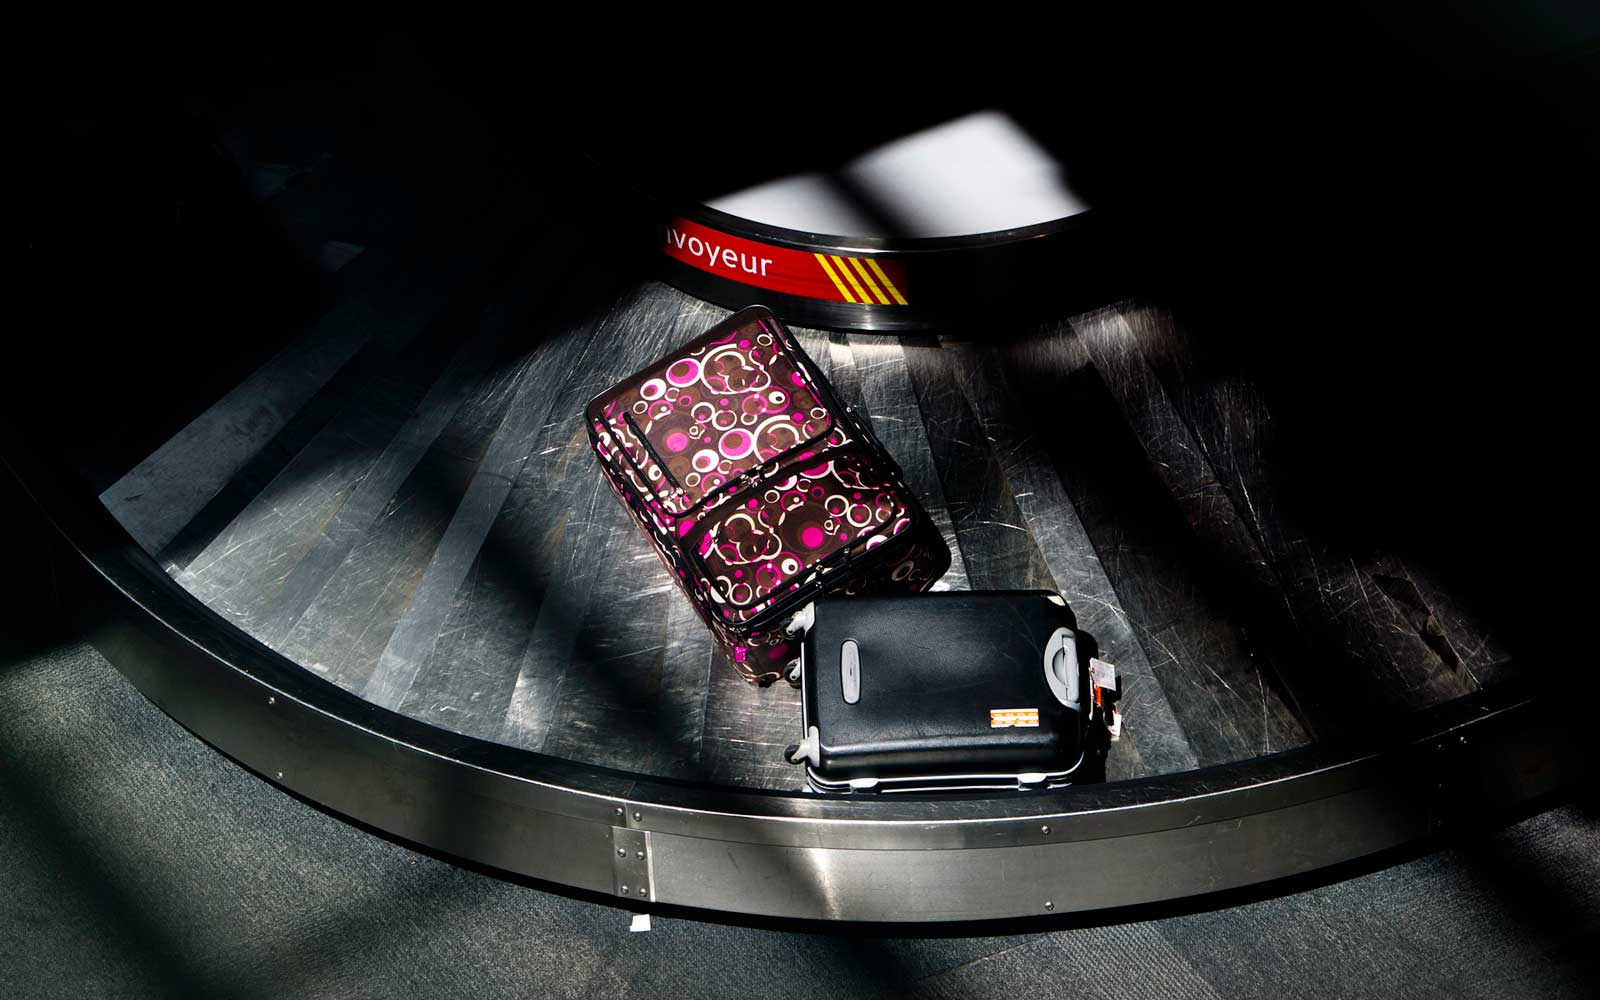 Luggage moves on a baggage carousel